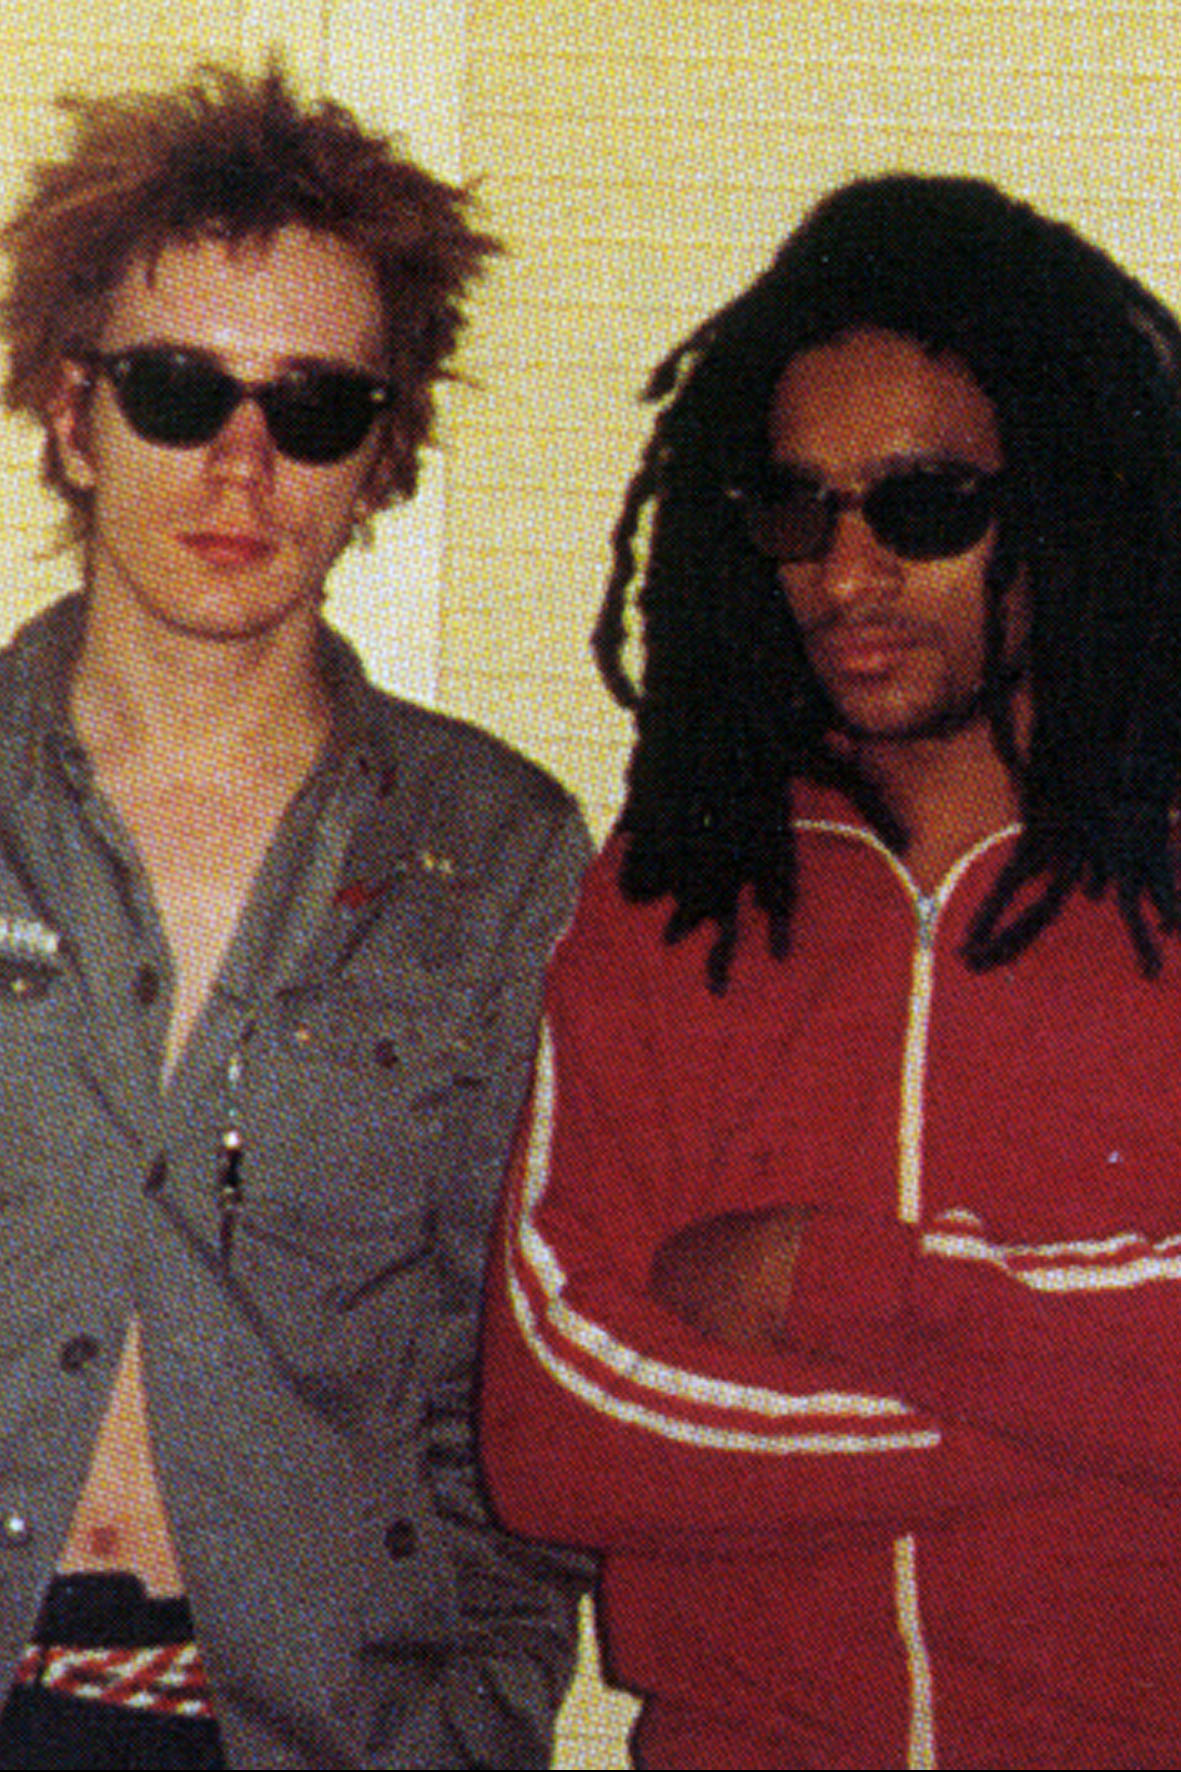 John Lydon and Don Letts.